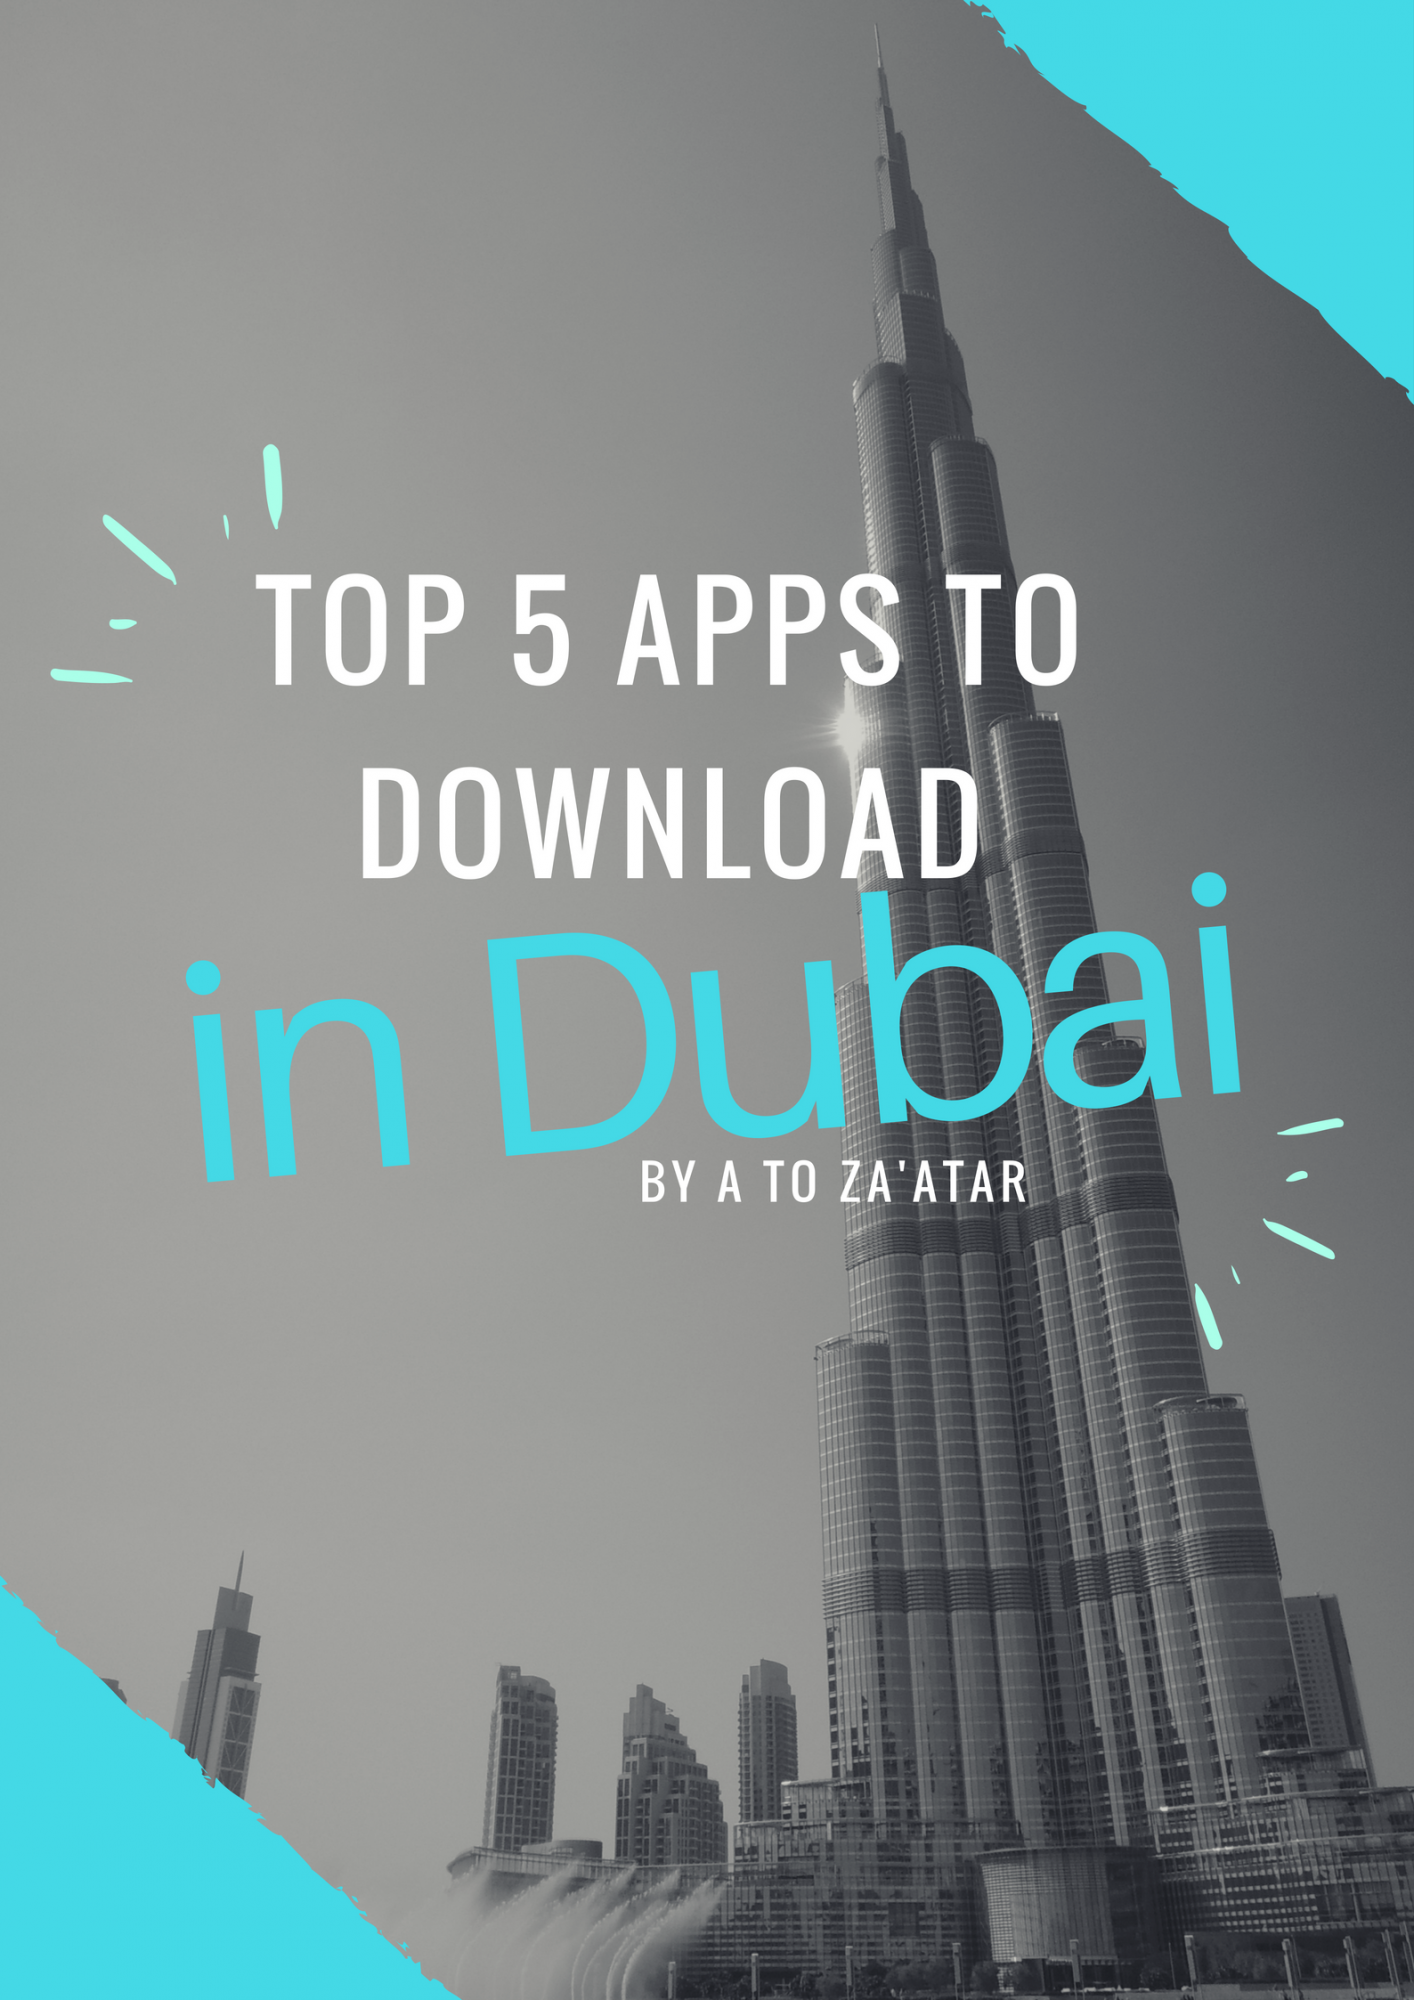 Top Five Apps to download when visiting Dubai  — A TO ZA'ATAR